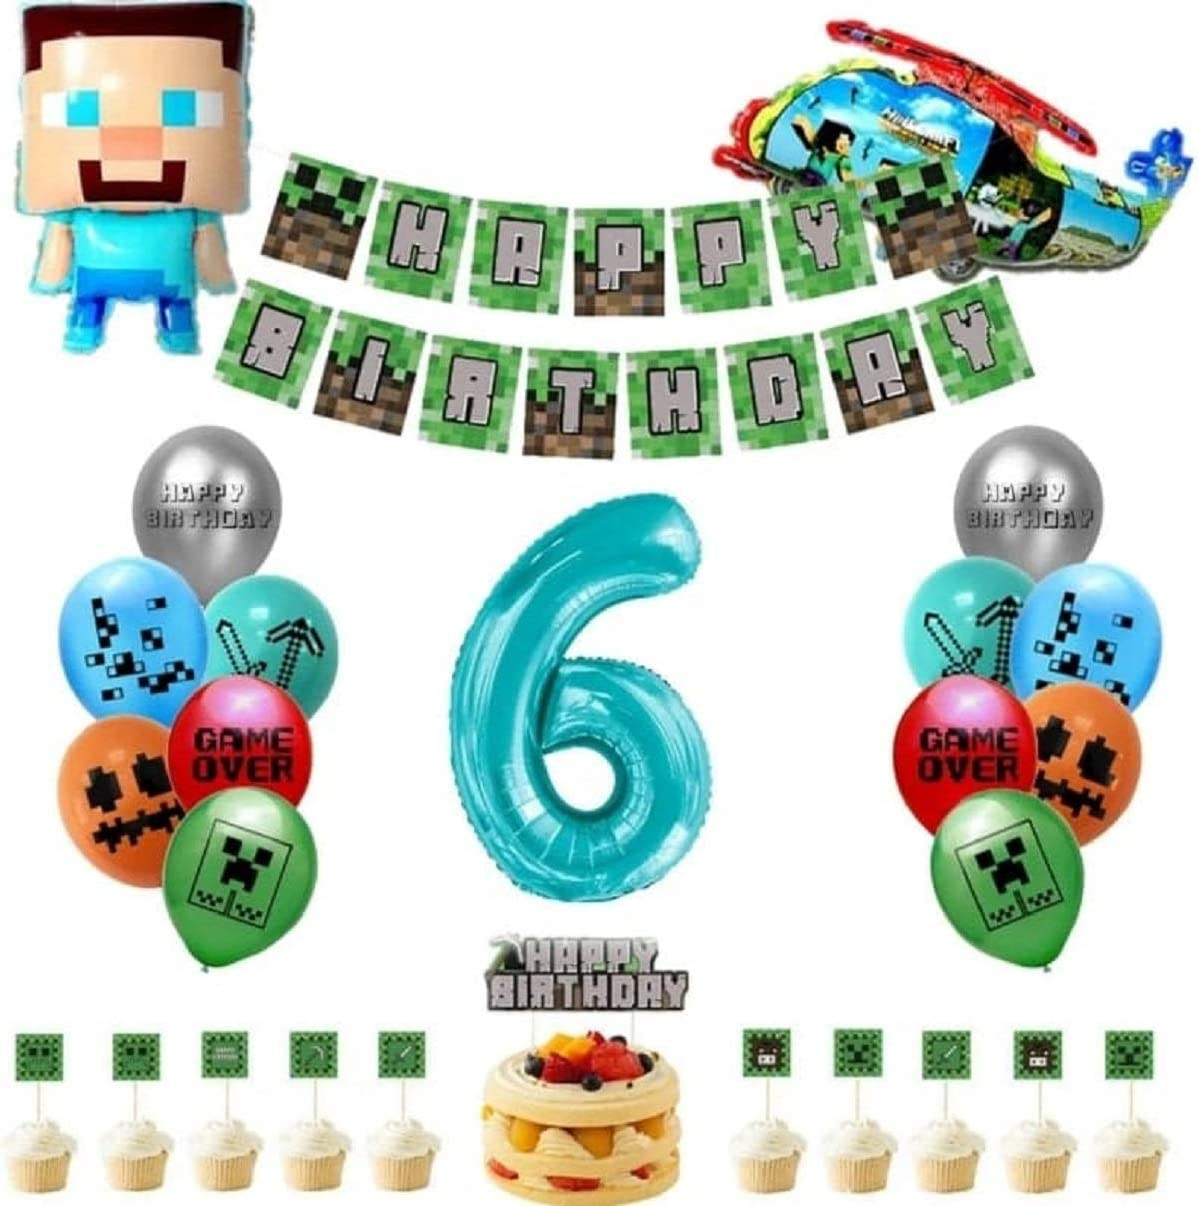 Pixel Miner Crafting Style Gamer Party Supplies,minecraft birthday party supplies Includes Cake Topper Cupcake Toppers Pixel Banner,Pixel Miner Balloons for Gamer Birthday Party Decor